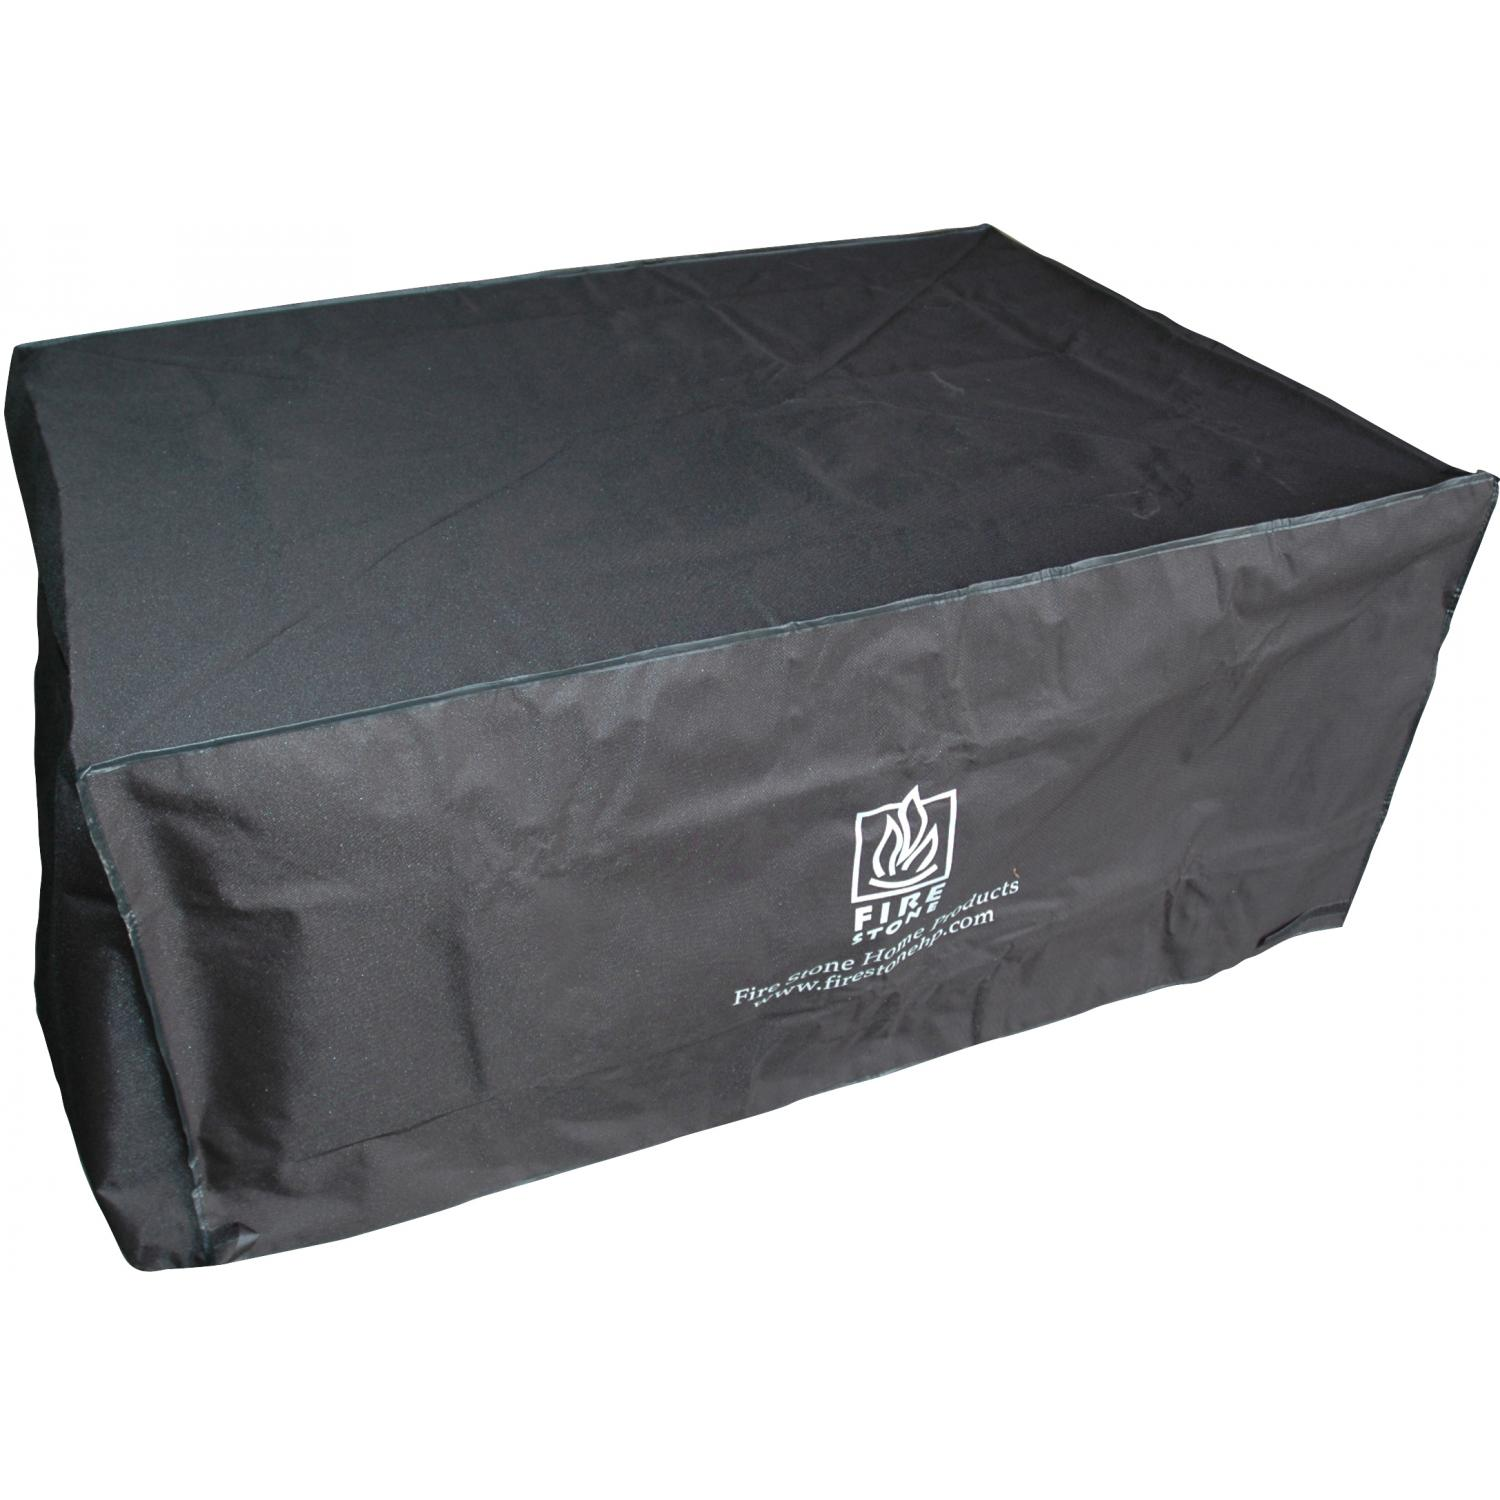 The Outdoor Greatroom Company Outdoor Greatroom Company Black Vinyl Cover For Naples, Sierra, And San Juan Fire Pits at Sears.com